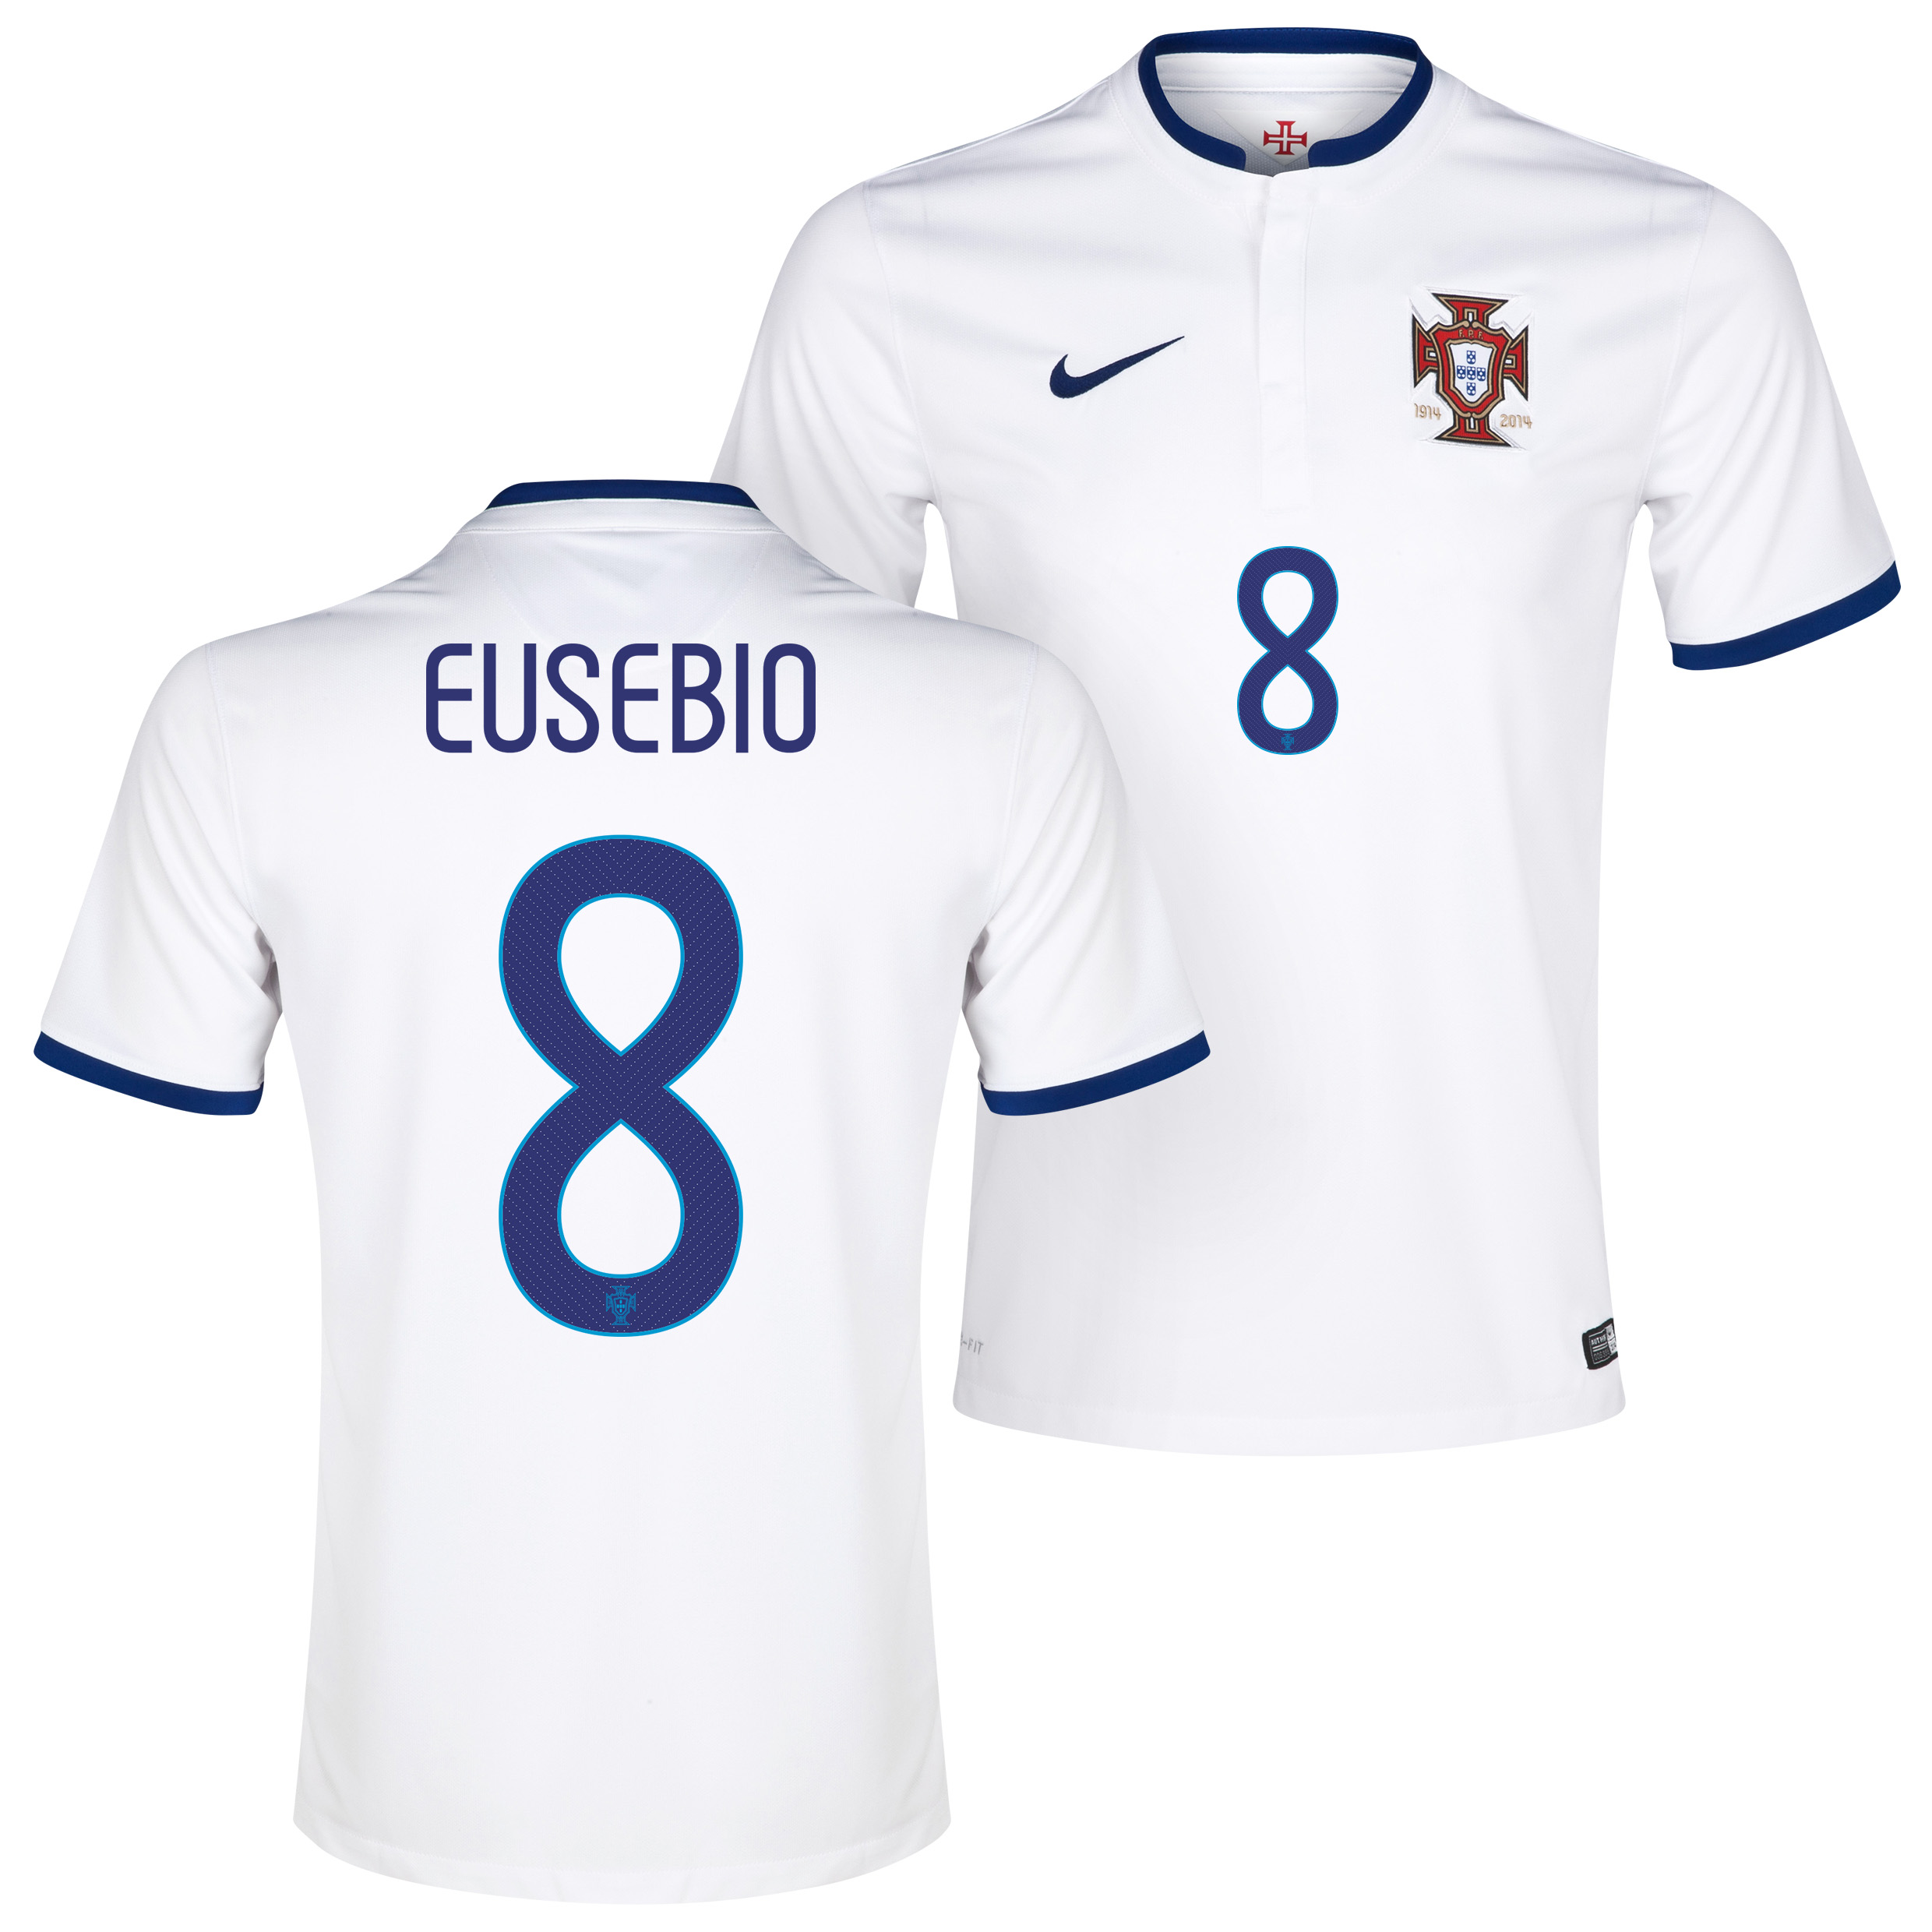 Portugal Away Shirt 2014/15 White with Eusebio 8 printing